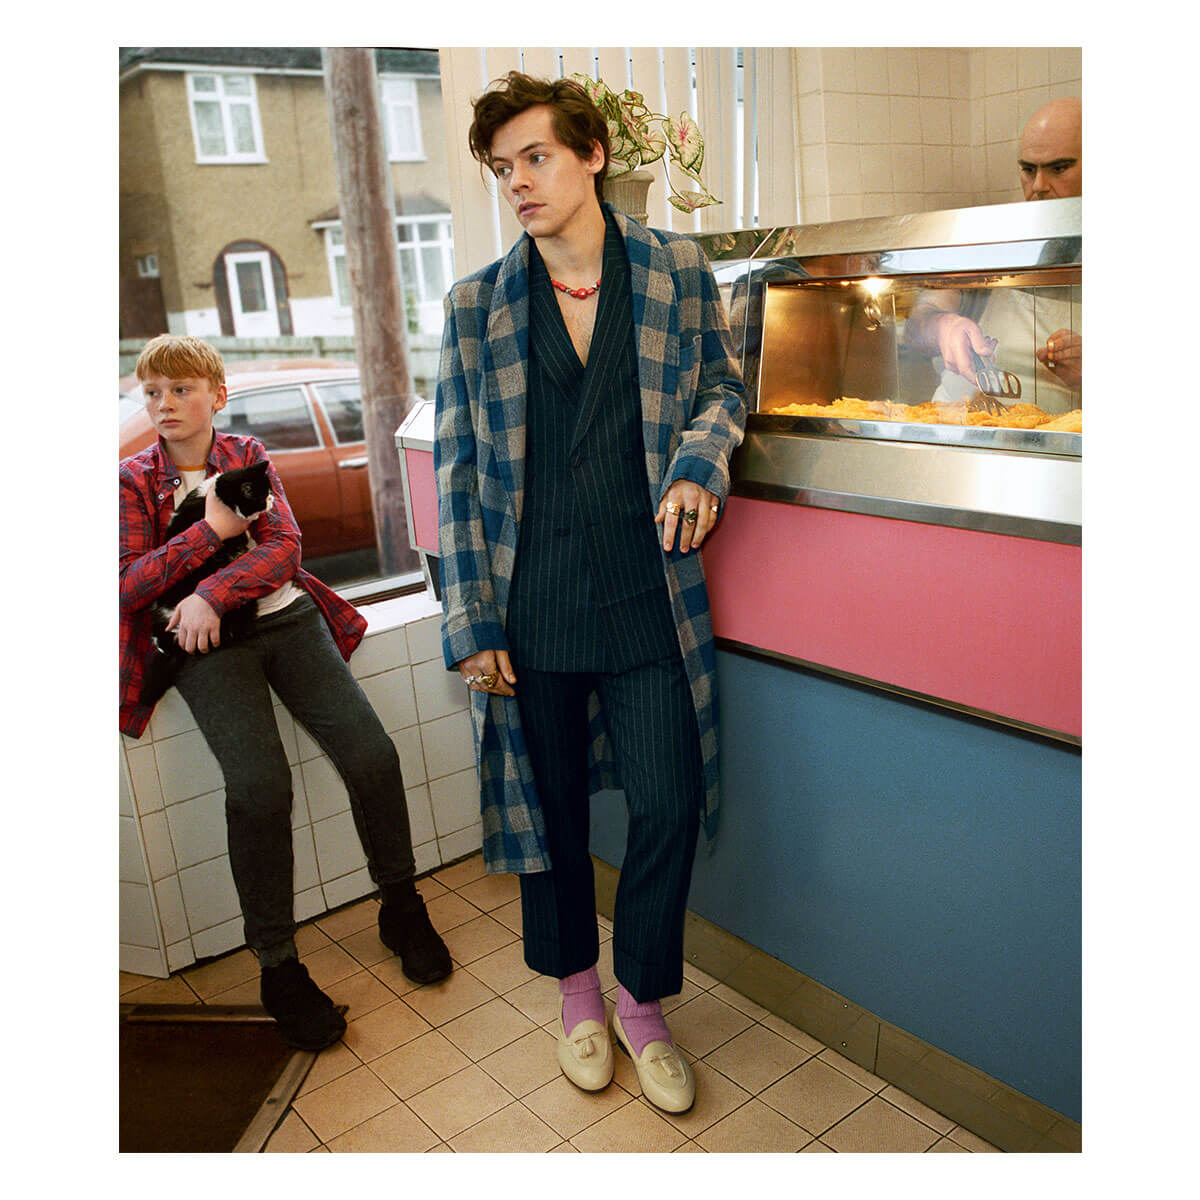 c0de05fbf Harry Styles Is The Face of Gucci's Tailoring Campaign - 10 ...